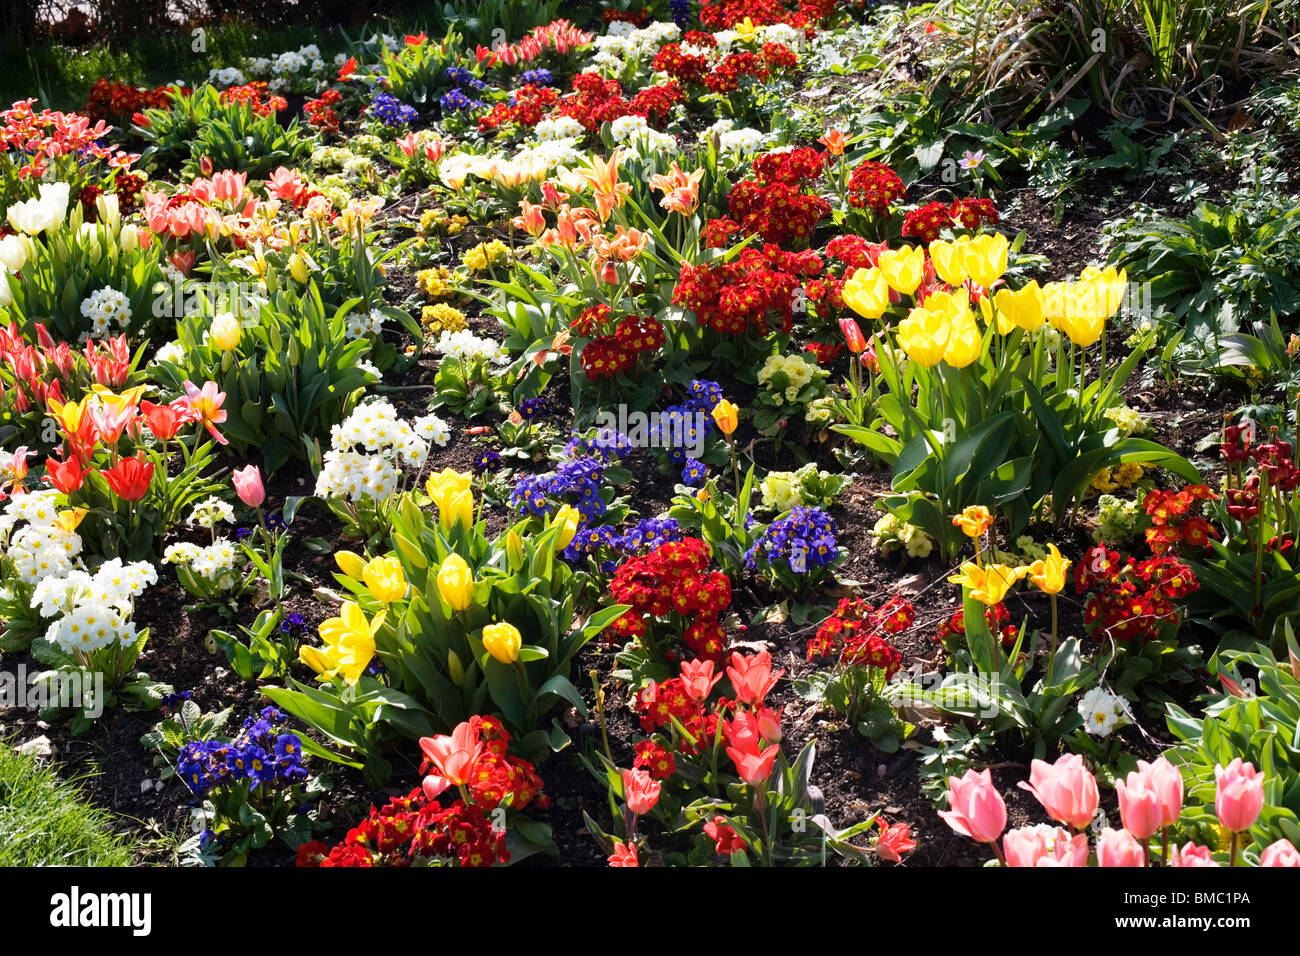 Spring Flowers Magnificent Display London England Uk Europe